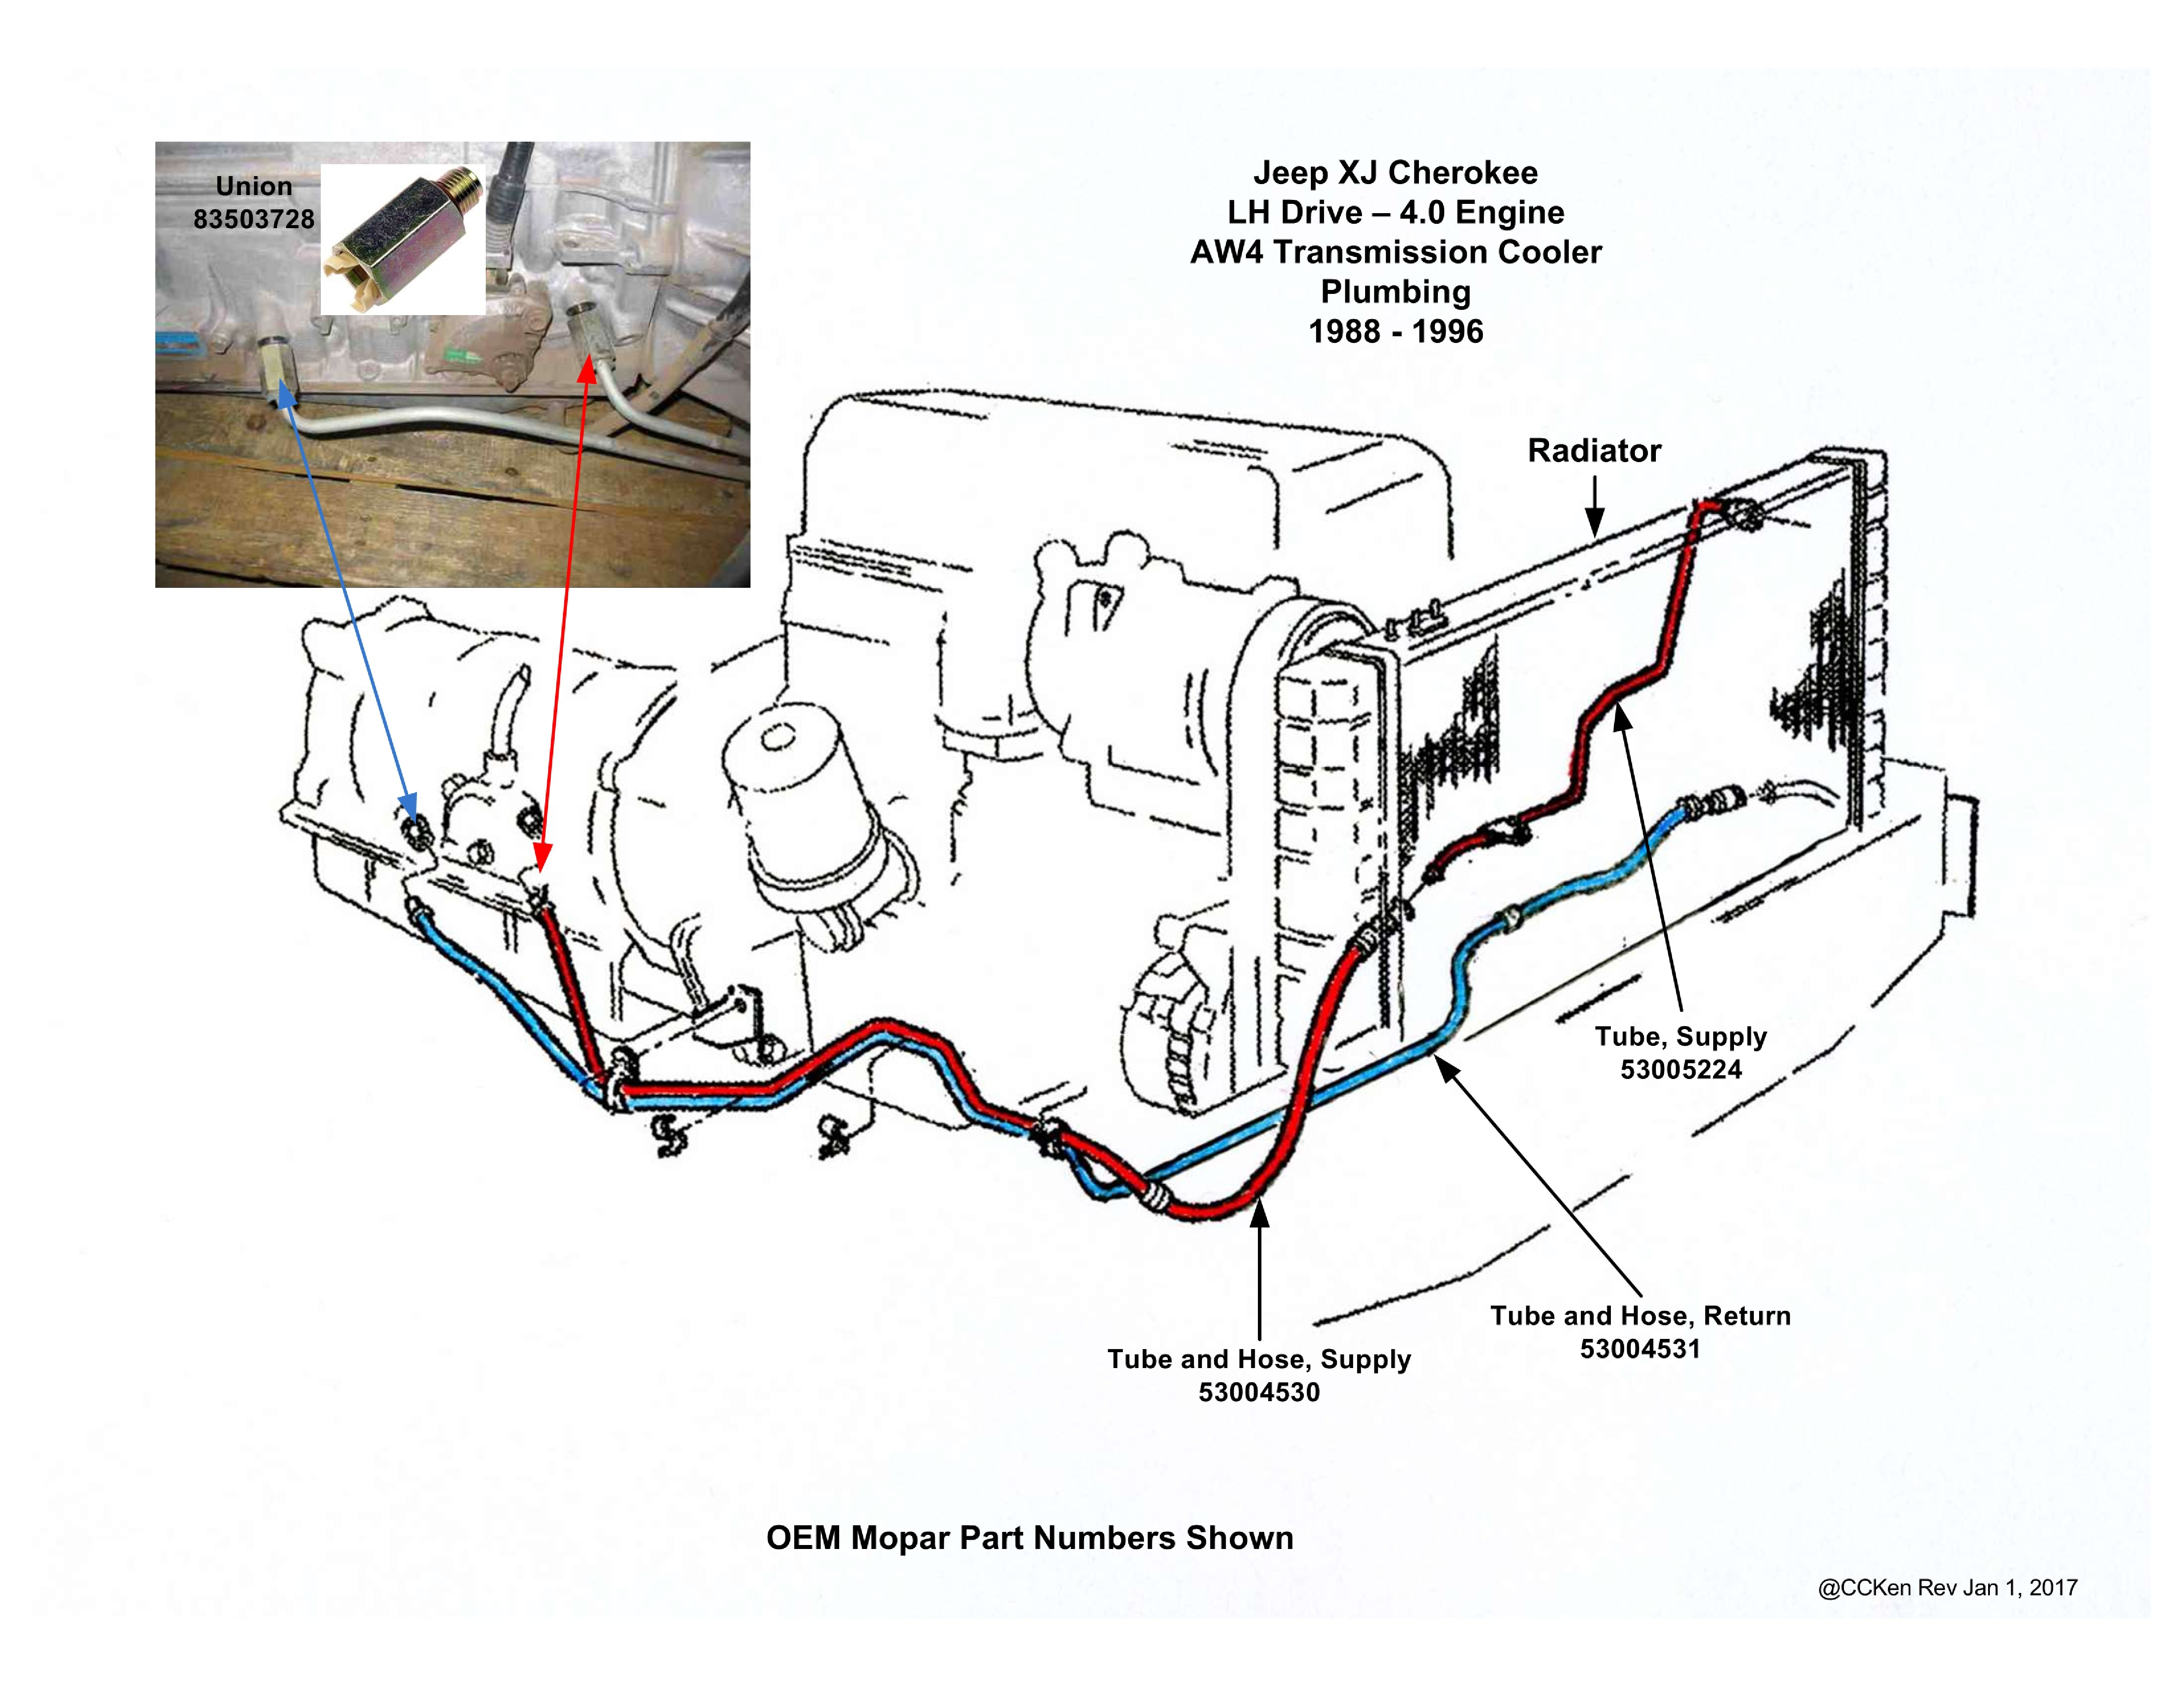 96 Jeep Cherokee Engine Diagram Great Info Threads In Here Page 2 Jeep Cherokee forum Of 96 Jeep Cherokee Engine Diagram